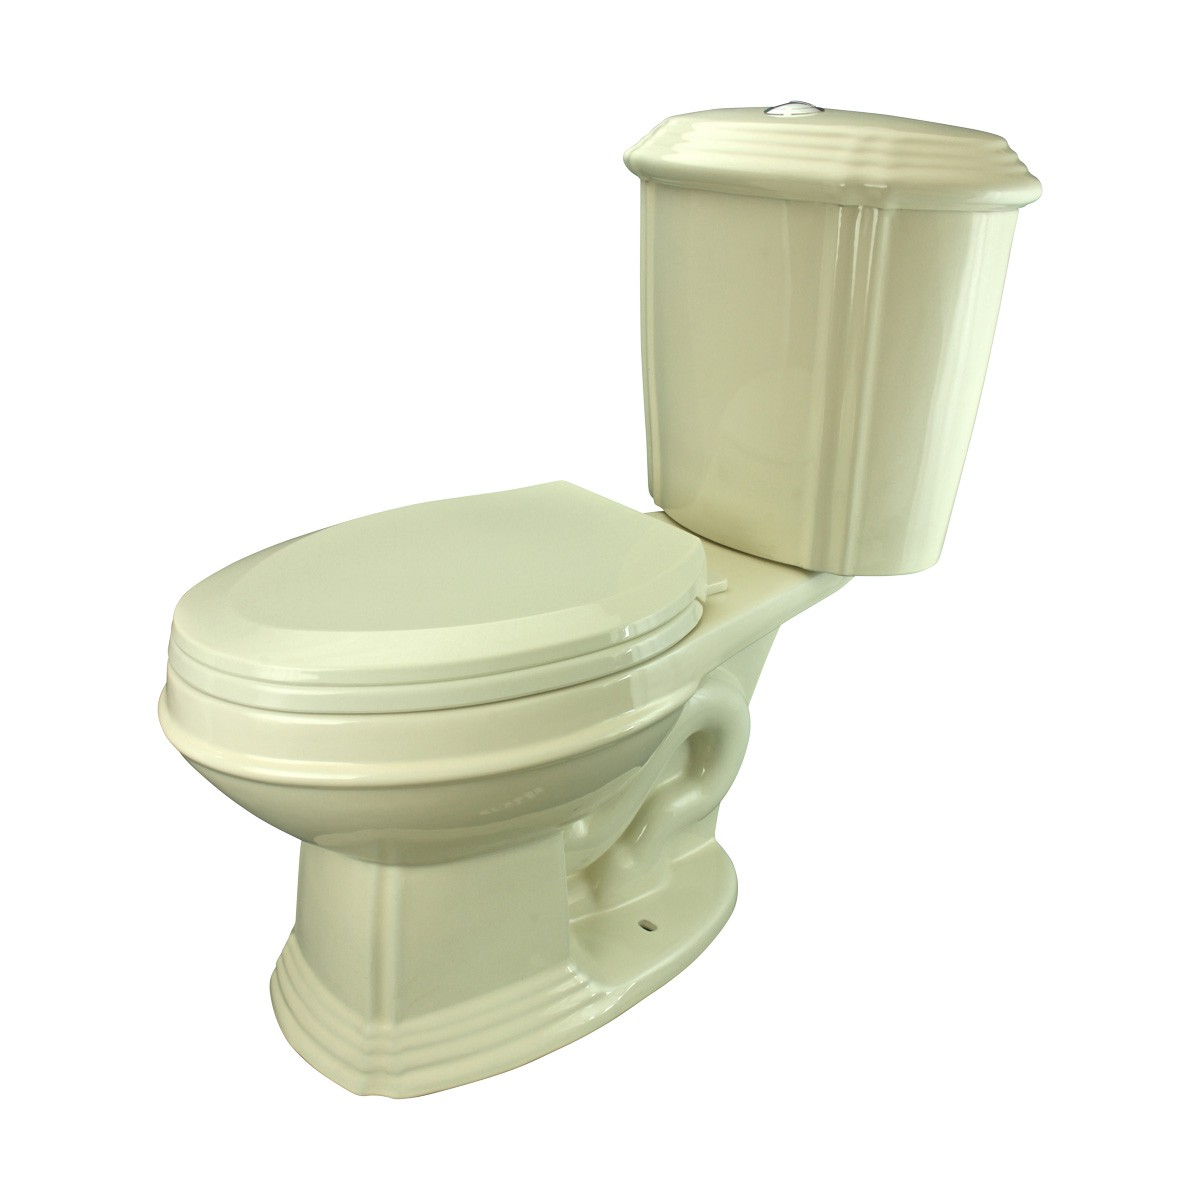 Amazing Elongated Dual Flush Bone Sheffield Toilet The Renovators Supply Inc Beatyapartments Chair Design Images Beatyapartmentscom